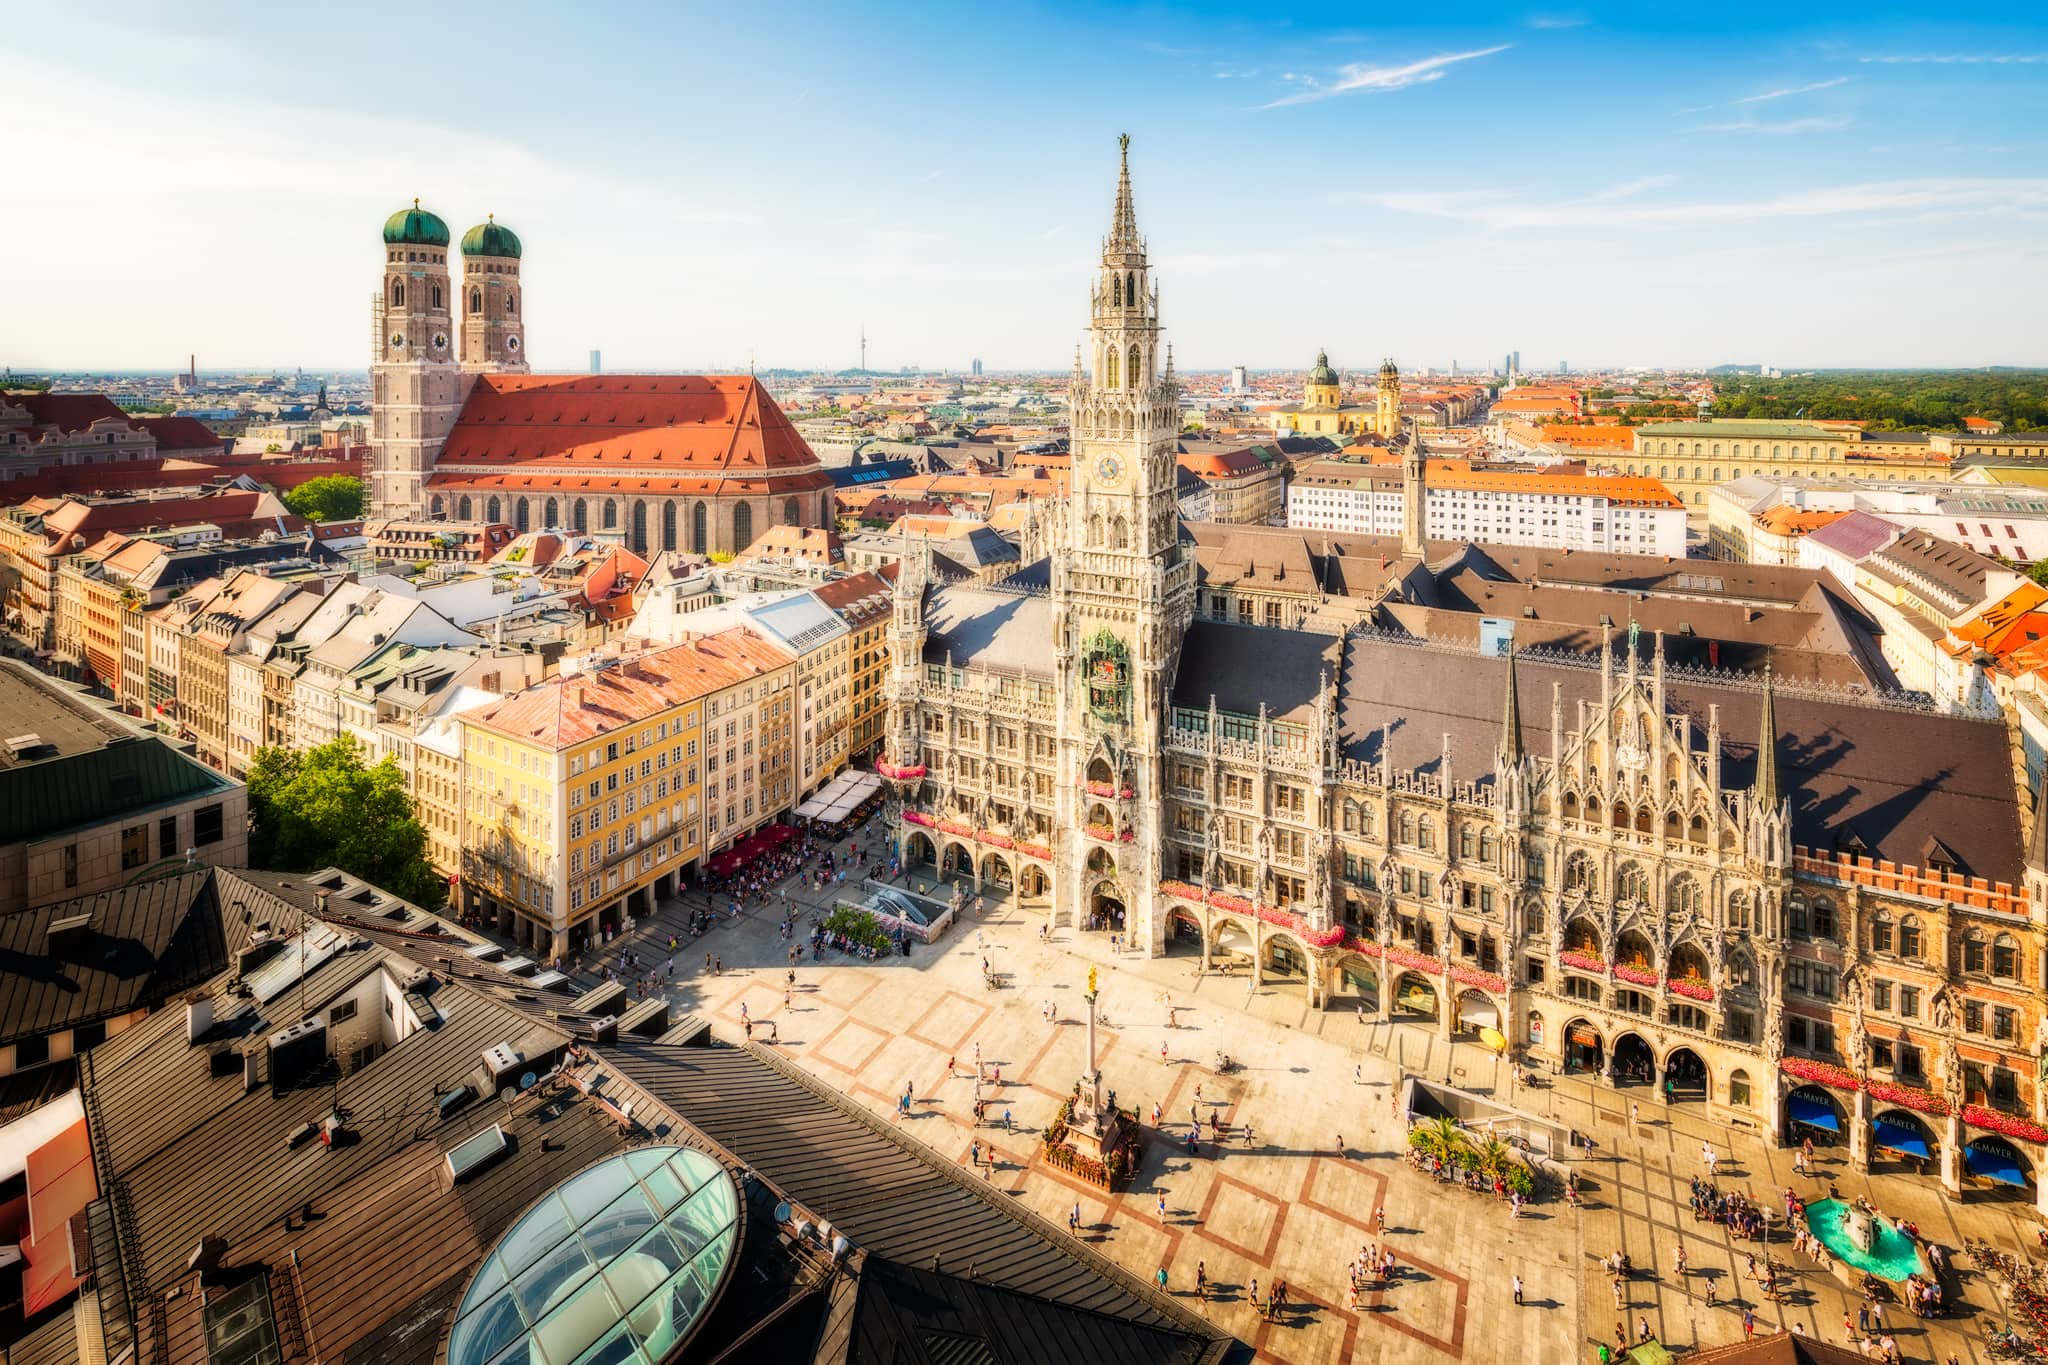 : Marienplatz - Munich city center with a view of the New Town Hall; Germany